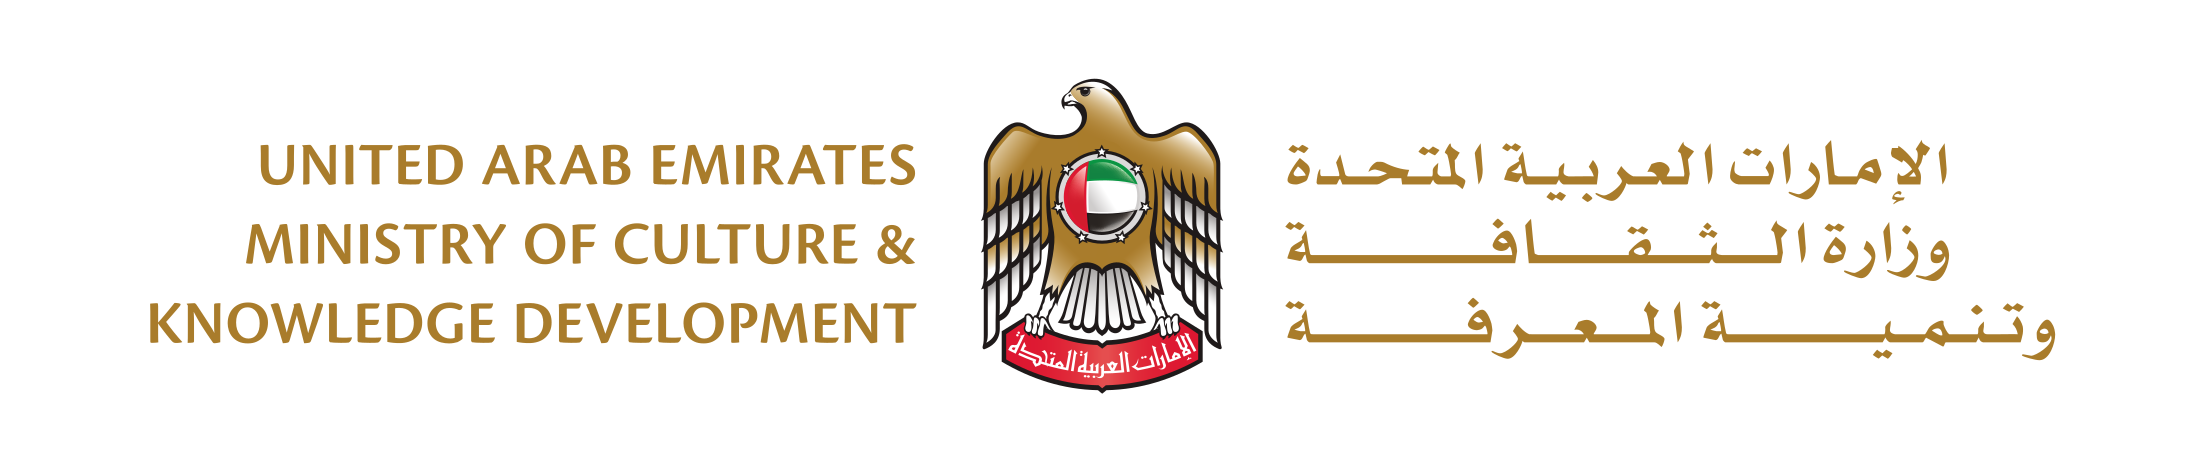 UAE Ministry of Culture & Knowledge Development